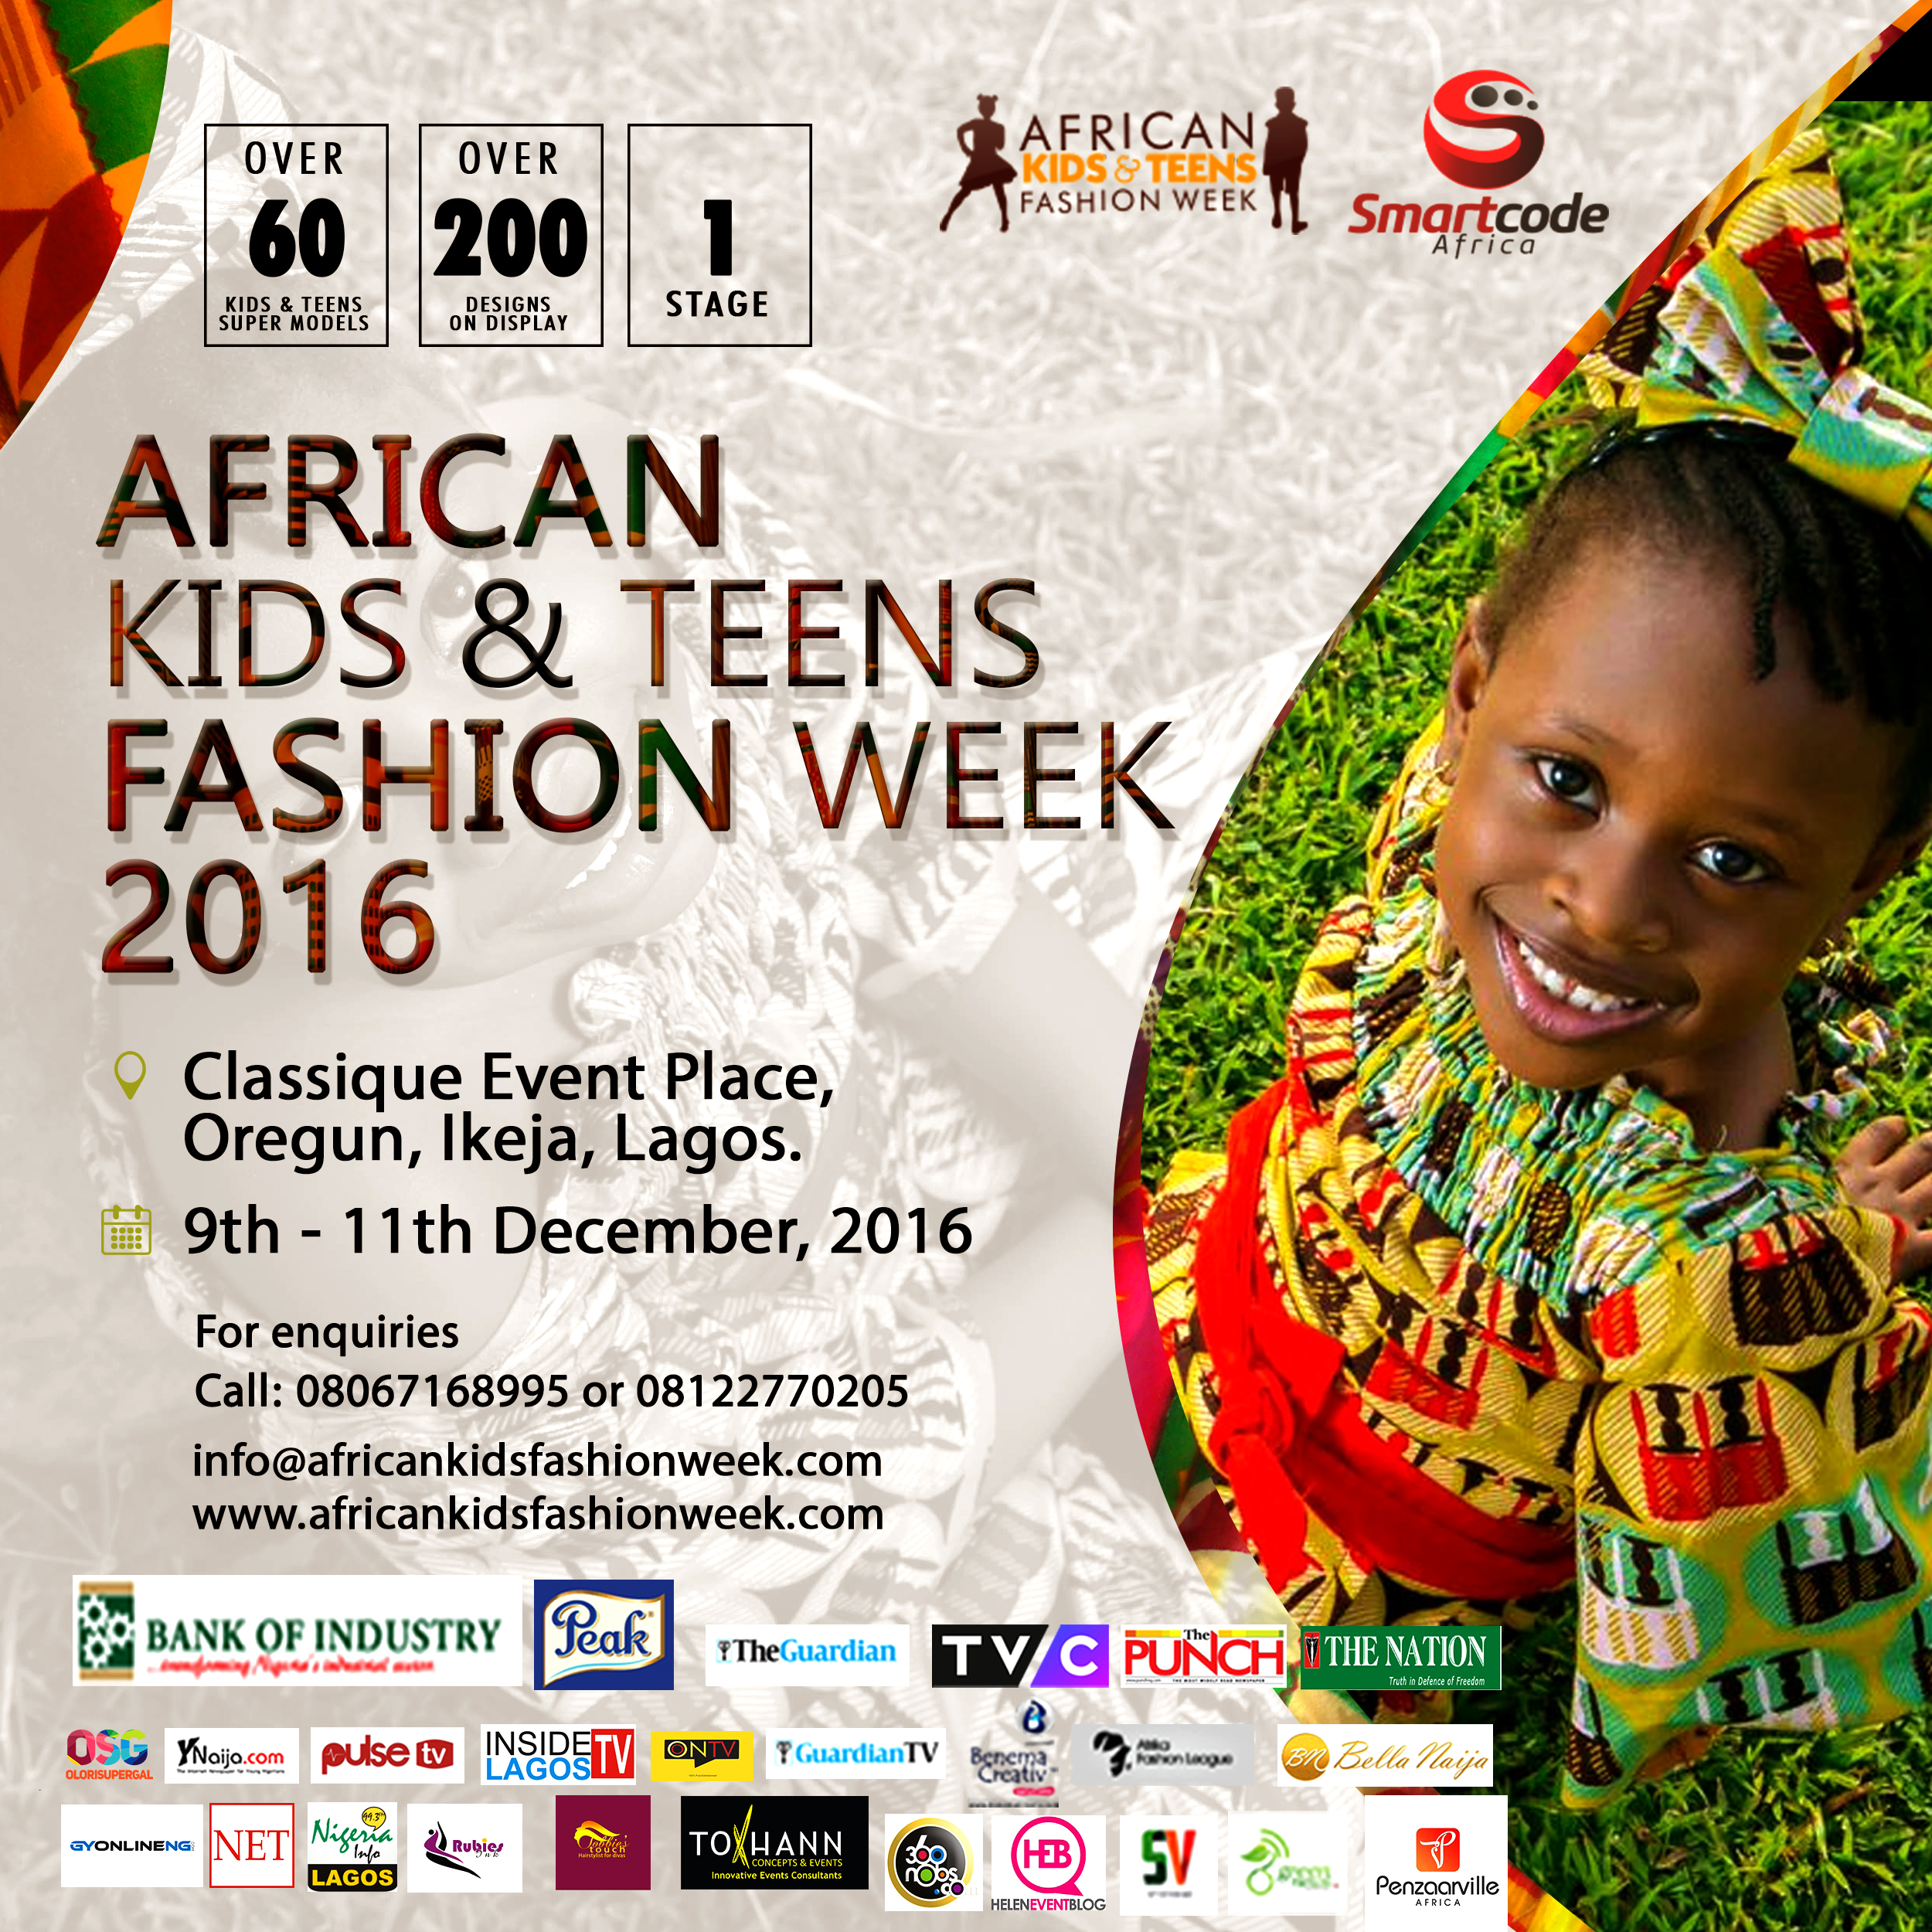 Lagos set to host the Biggest Fashion Show for Kids and Teens – African Kids and Teens Fashion Week 2016